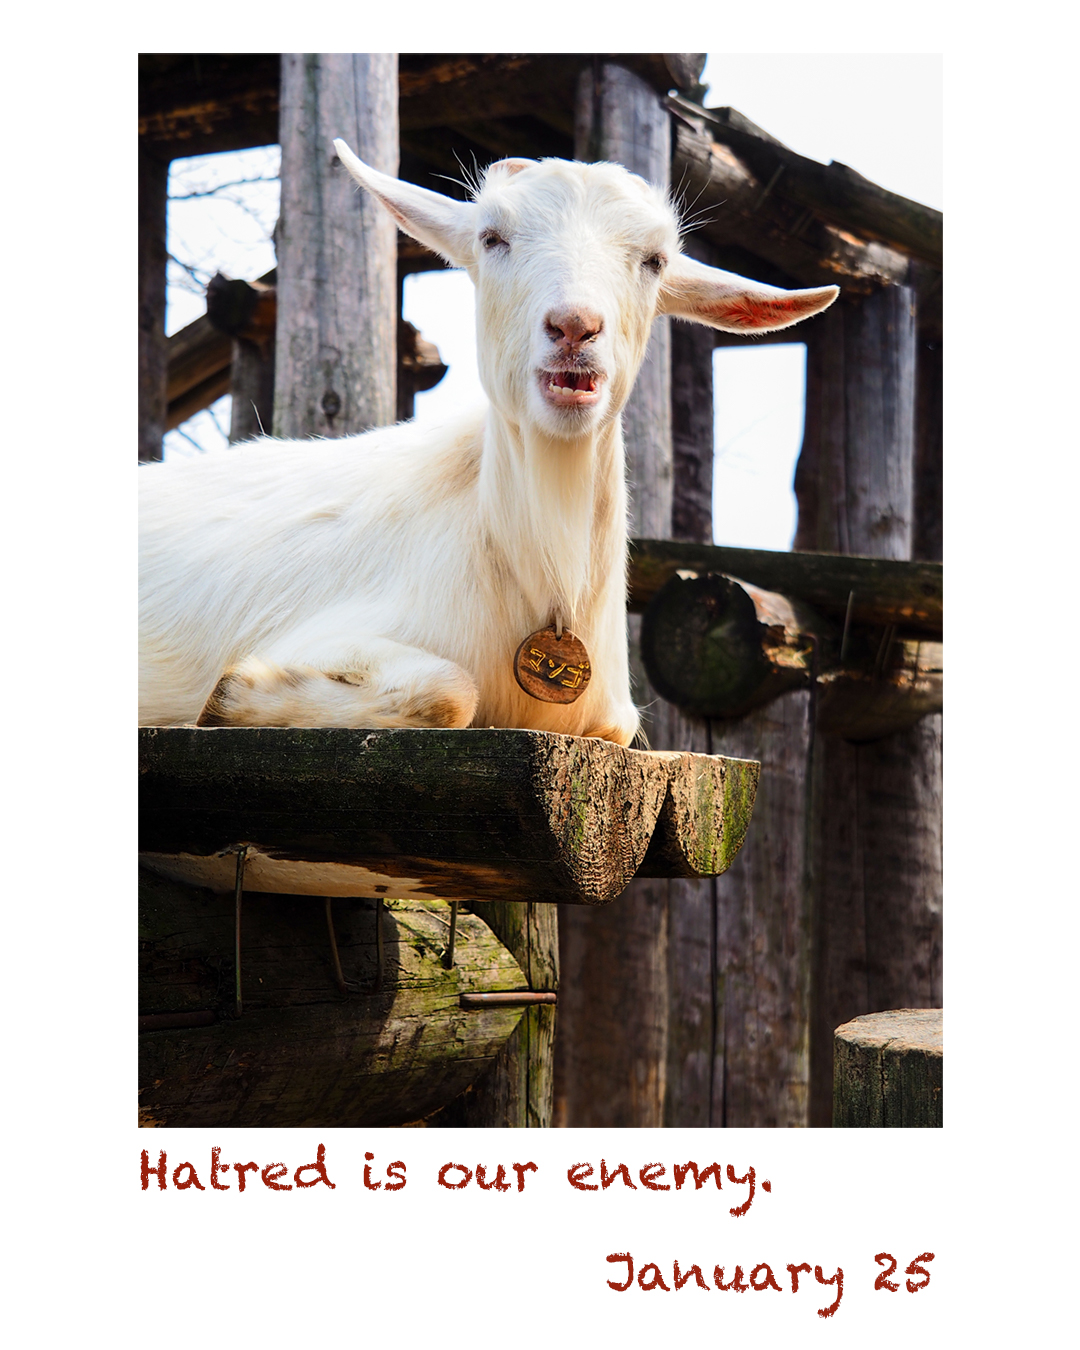 Hatred is our enemy.